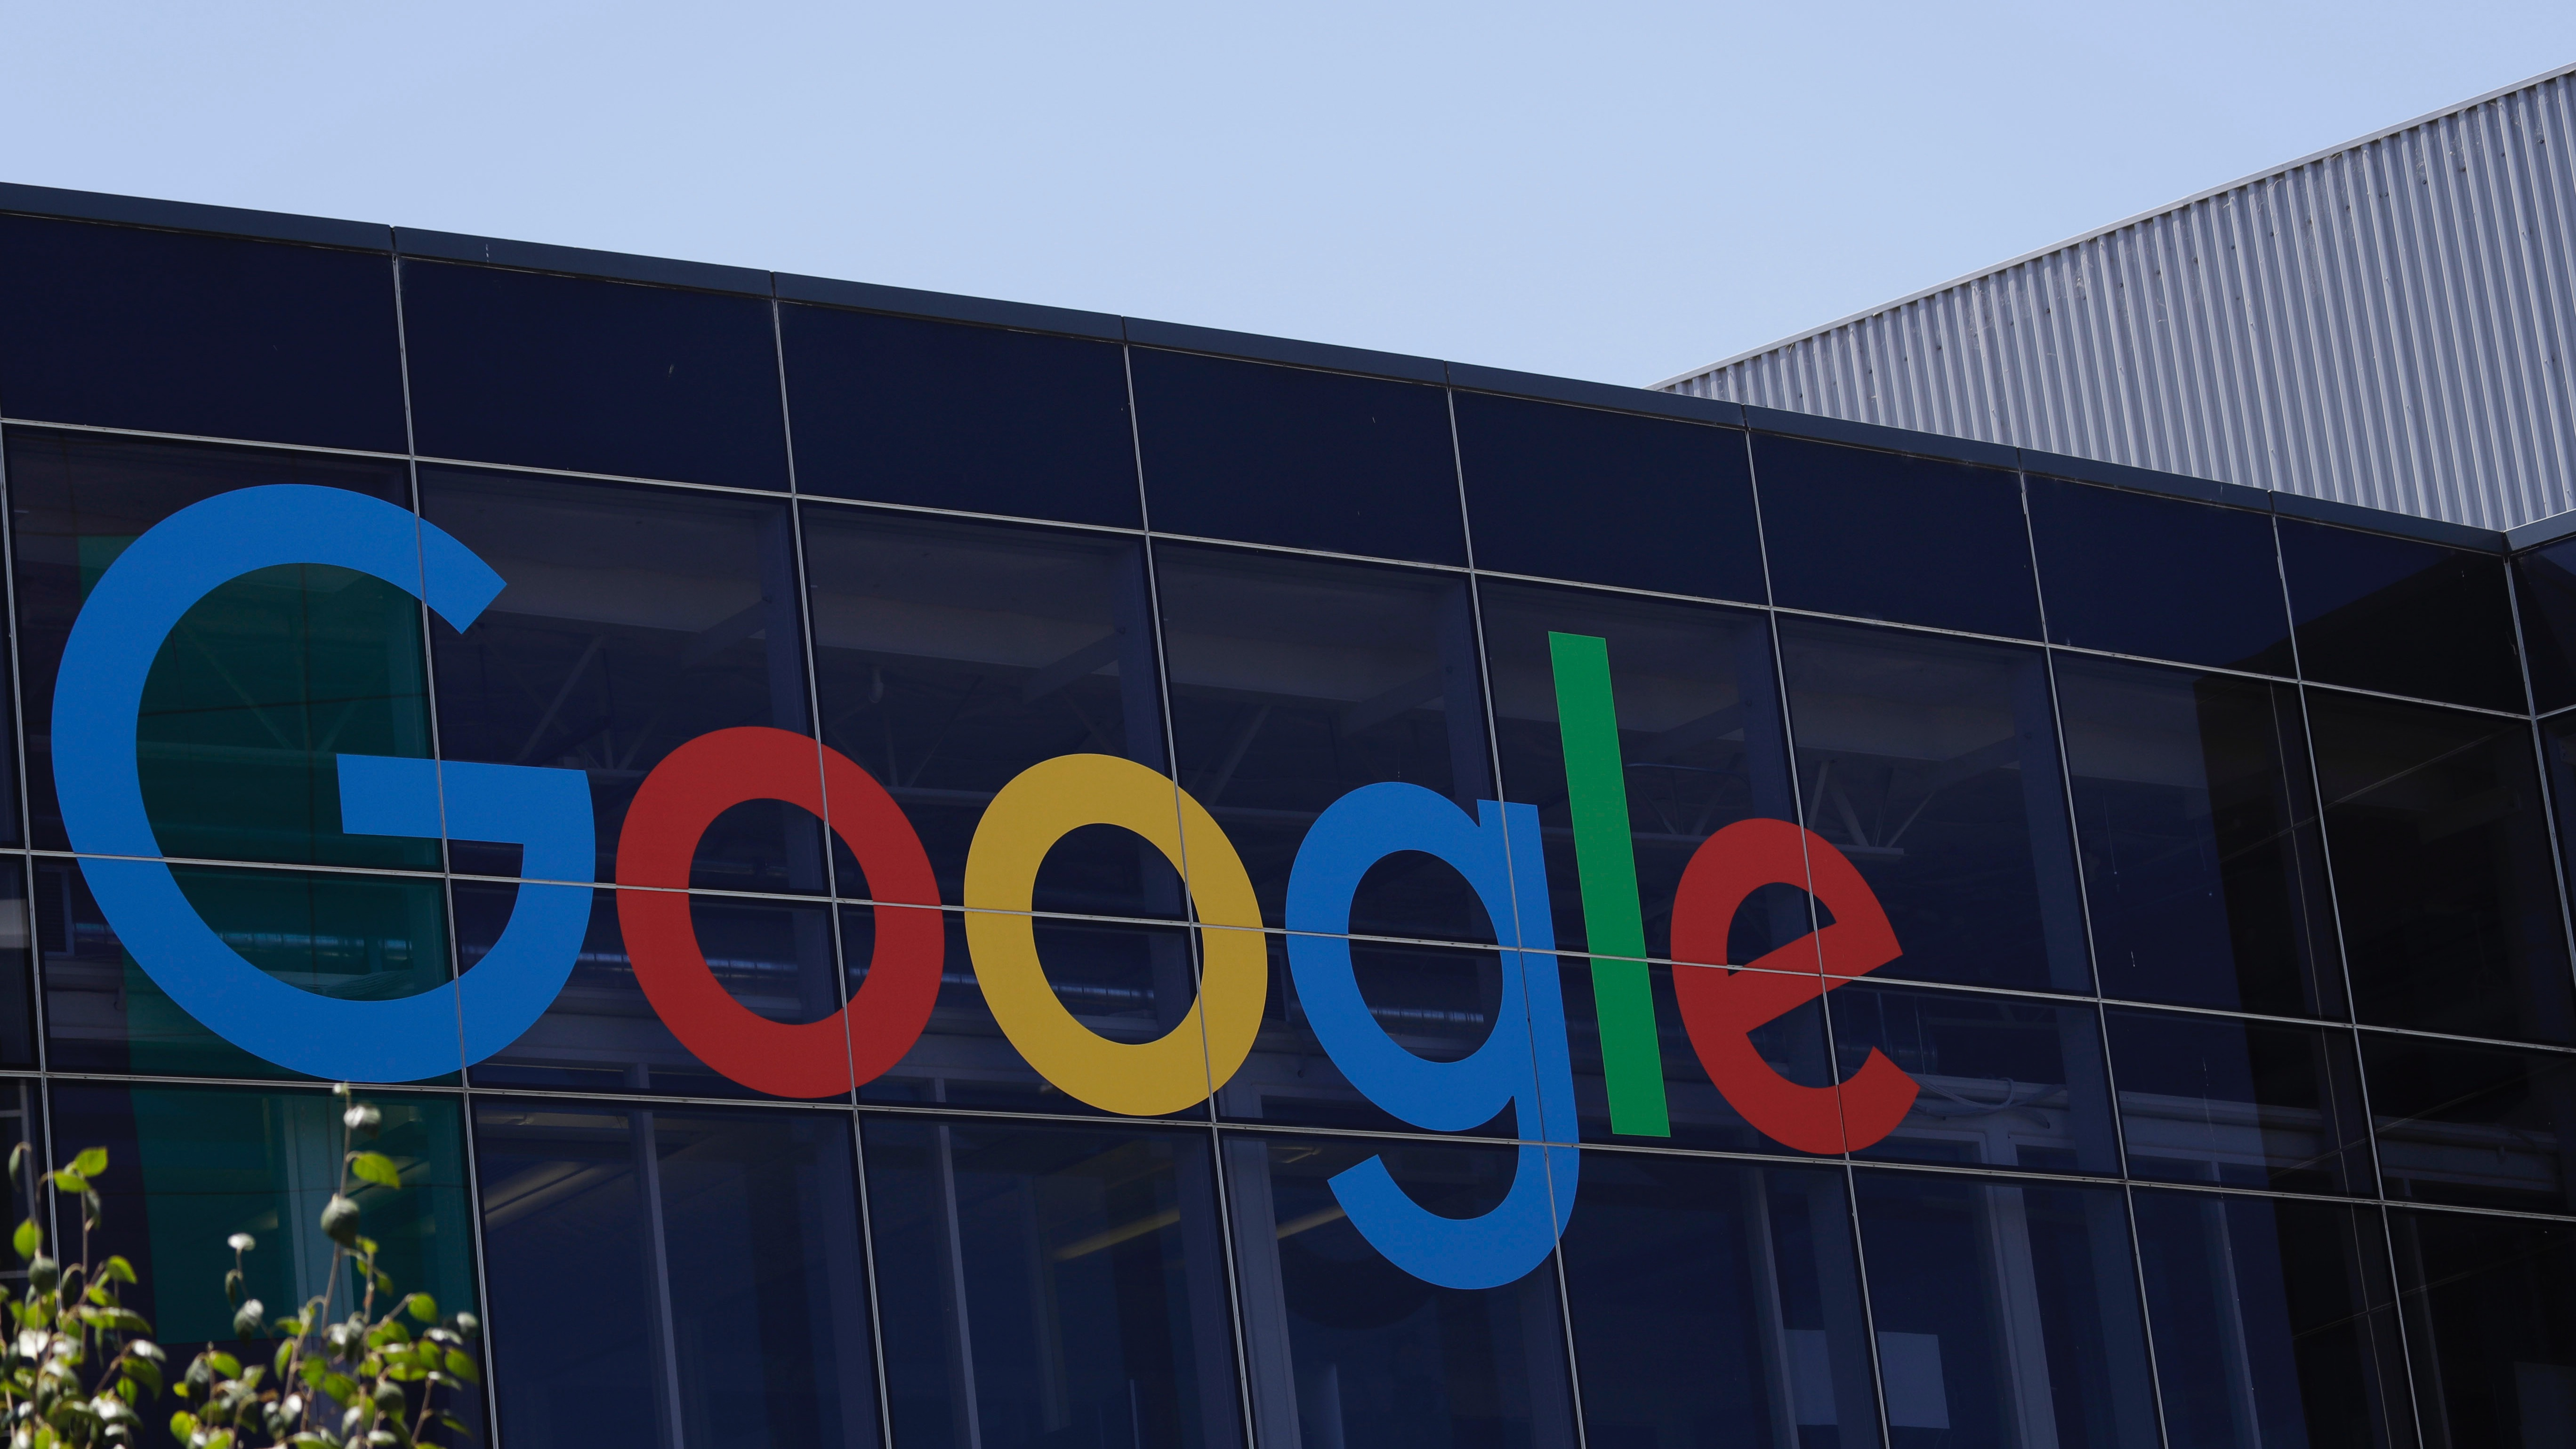 The Google logo is seen at the company's headquarters Tuesday, July 19, 2016, in Mountain View, Calif. (AP Photo/Marcio Jose Sanchez)